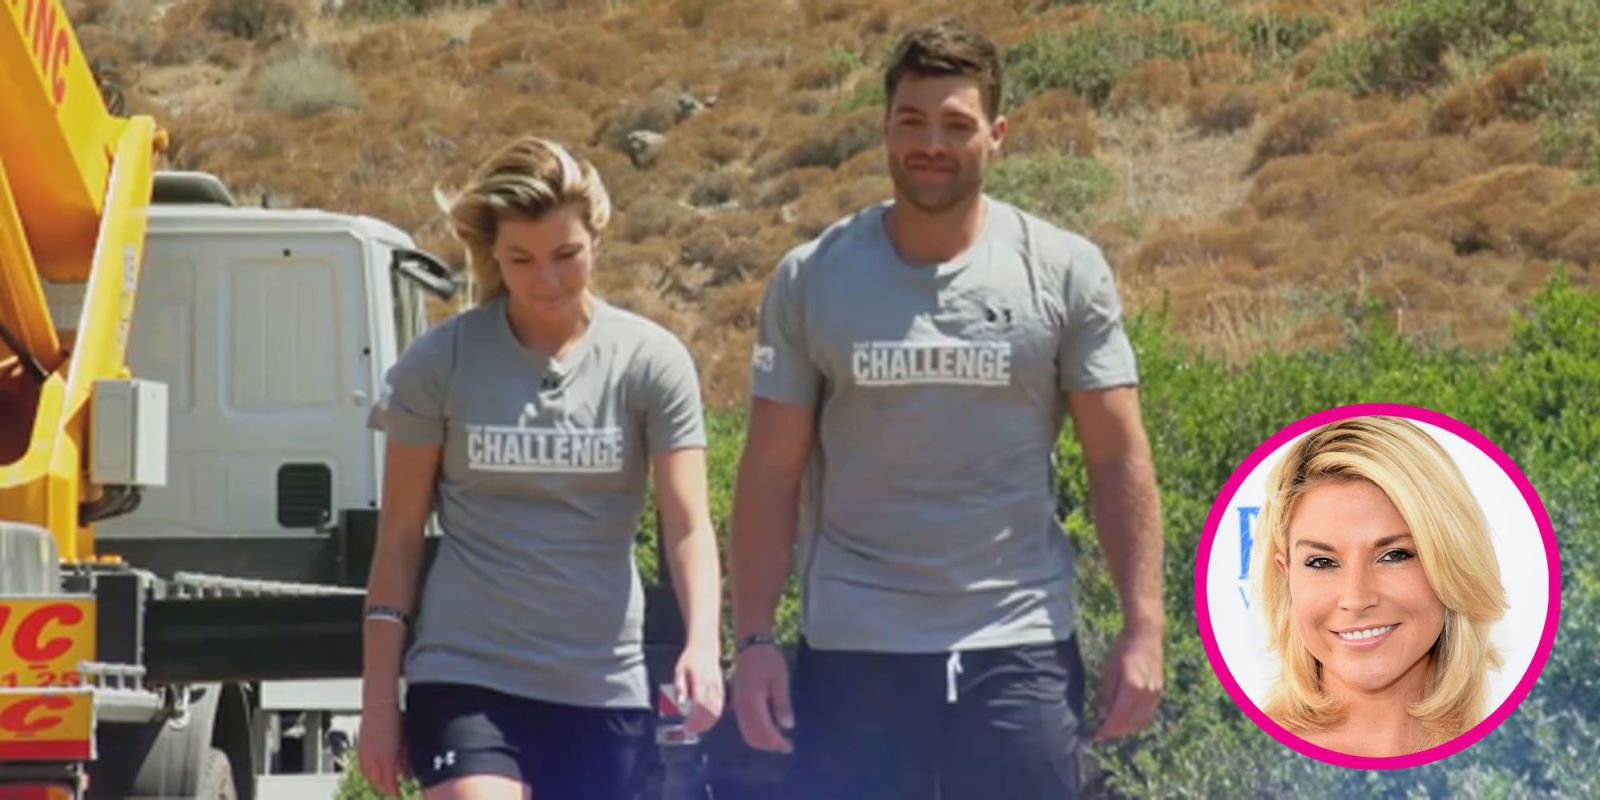 Was diem brown dating ct when she died